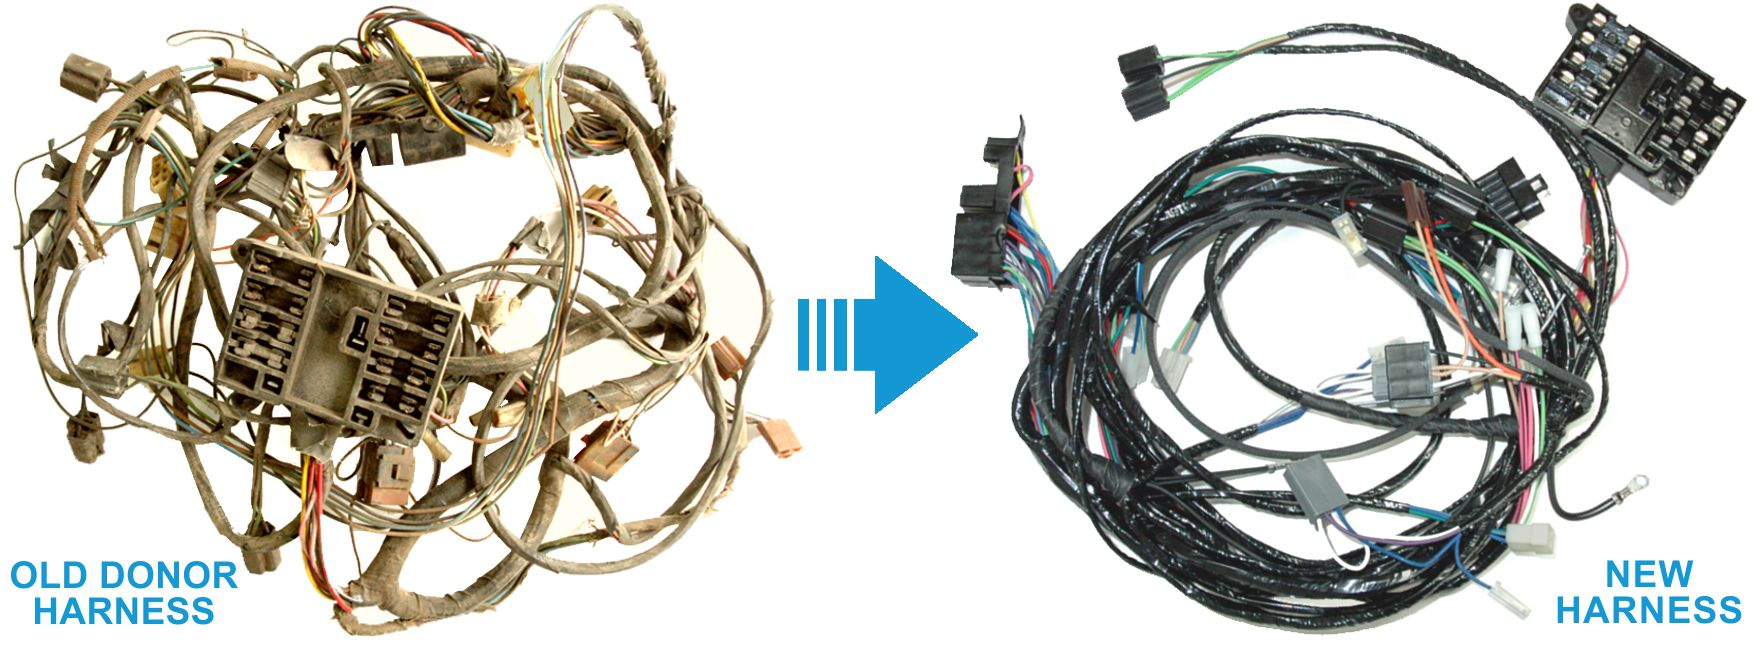 Exact Oem Reproduction Wiring Harnesses For Classic Muscle Cars Pigtail Harness Donor